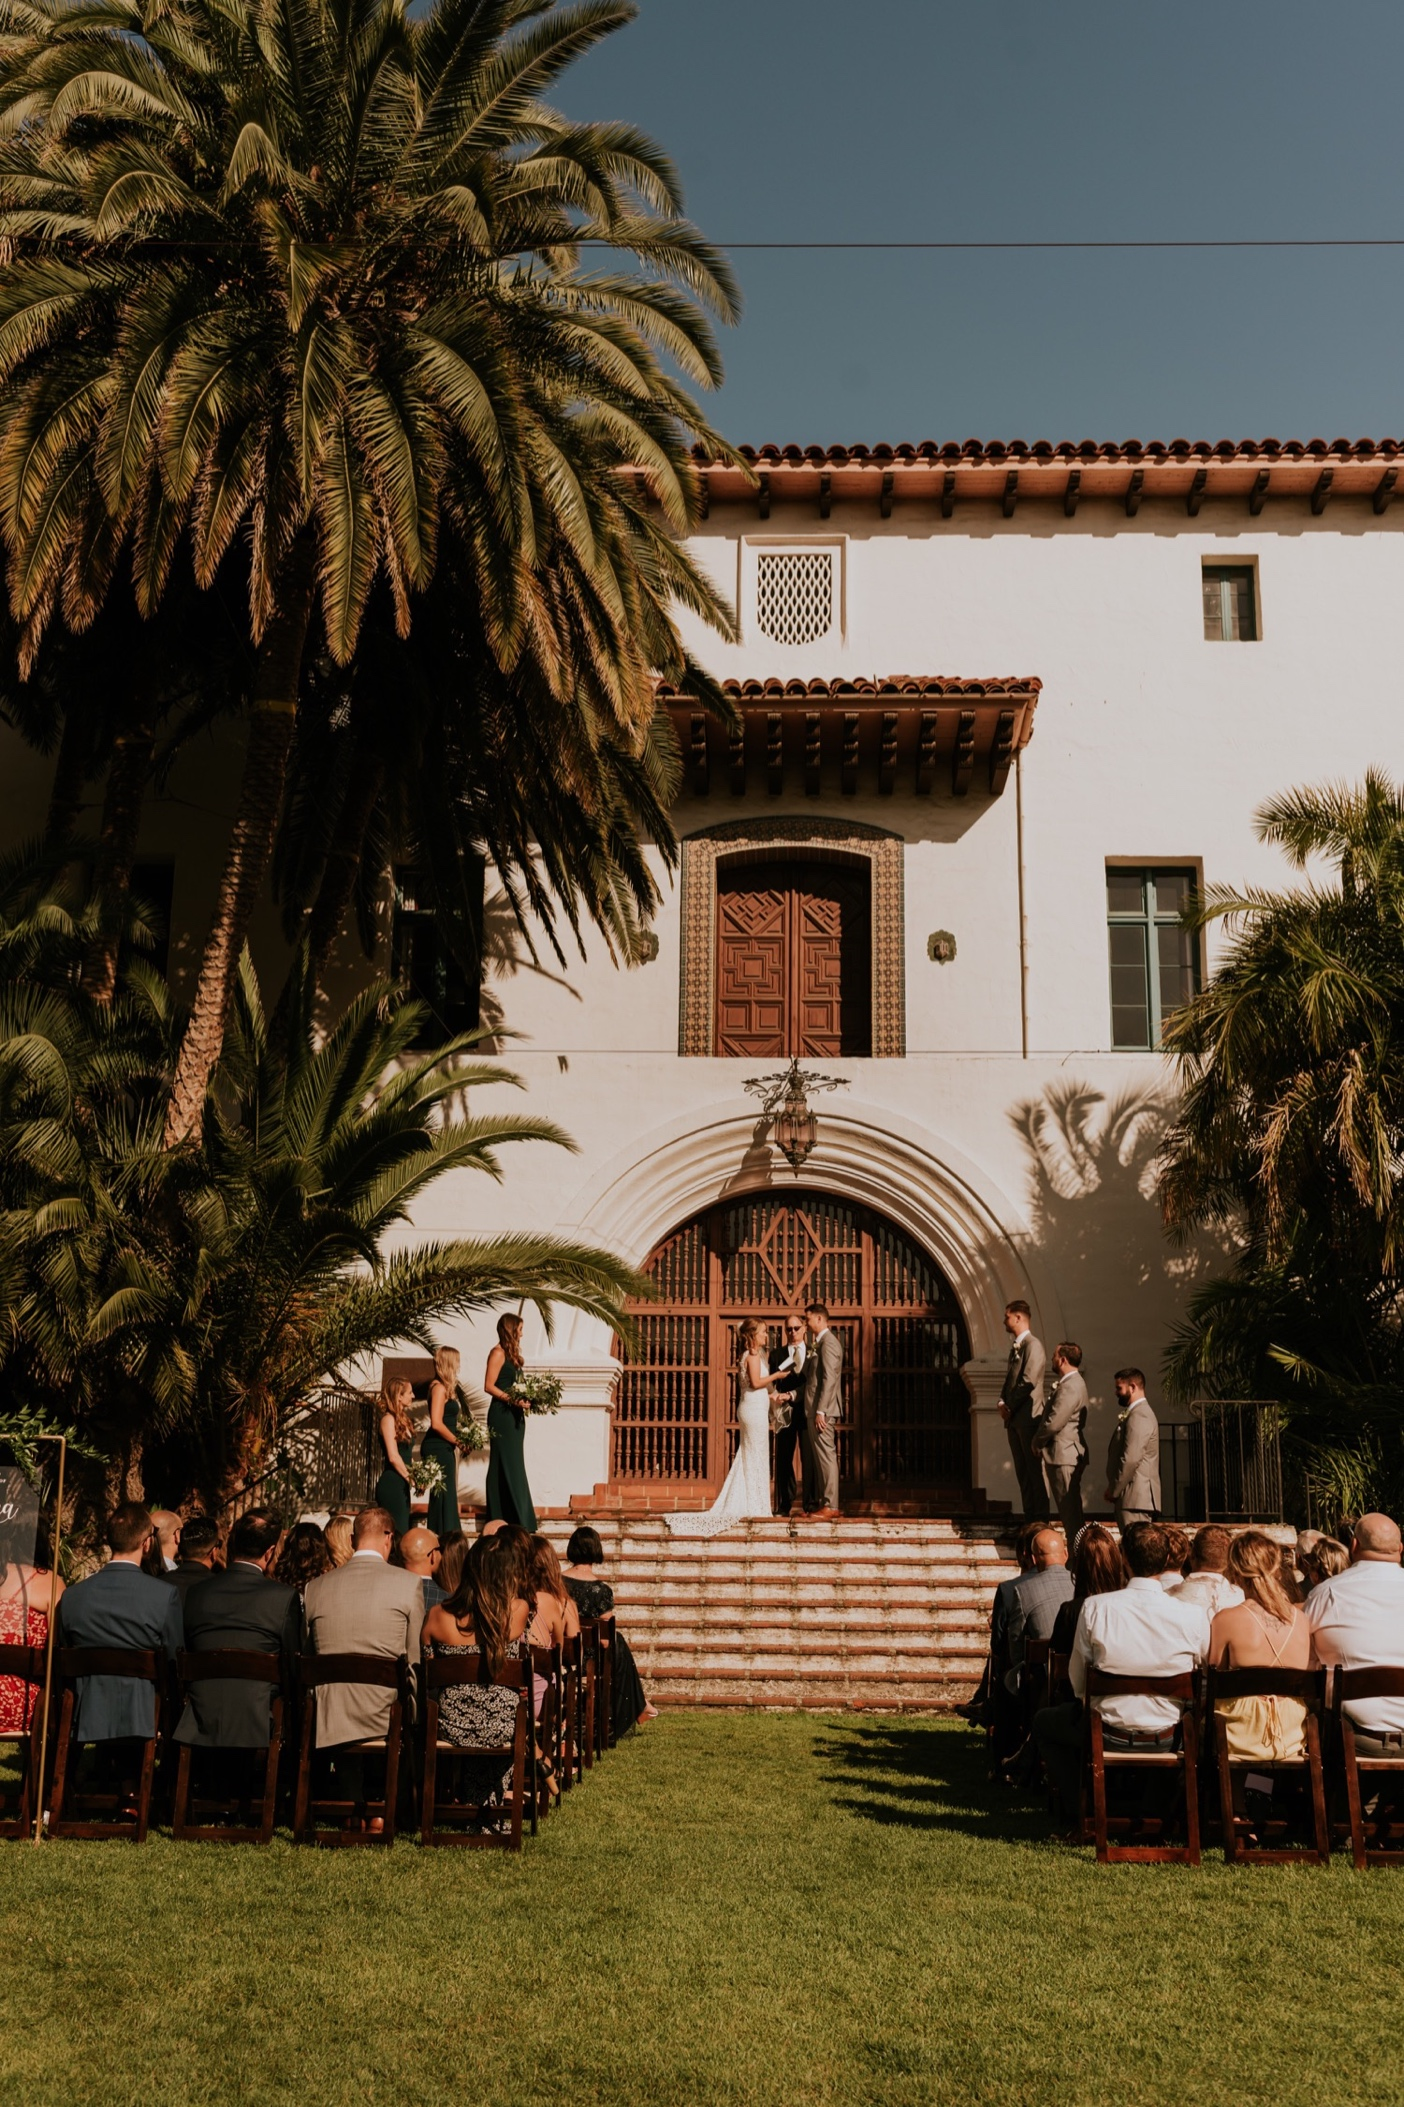 Wedding ceremony on outdoor lawn at the Santa Barbara Courthouse.